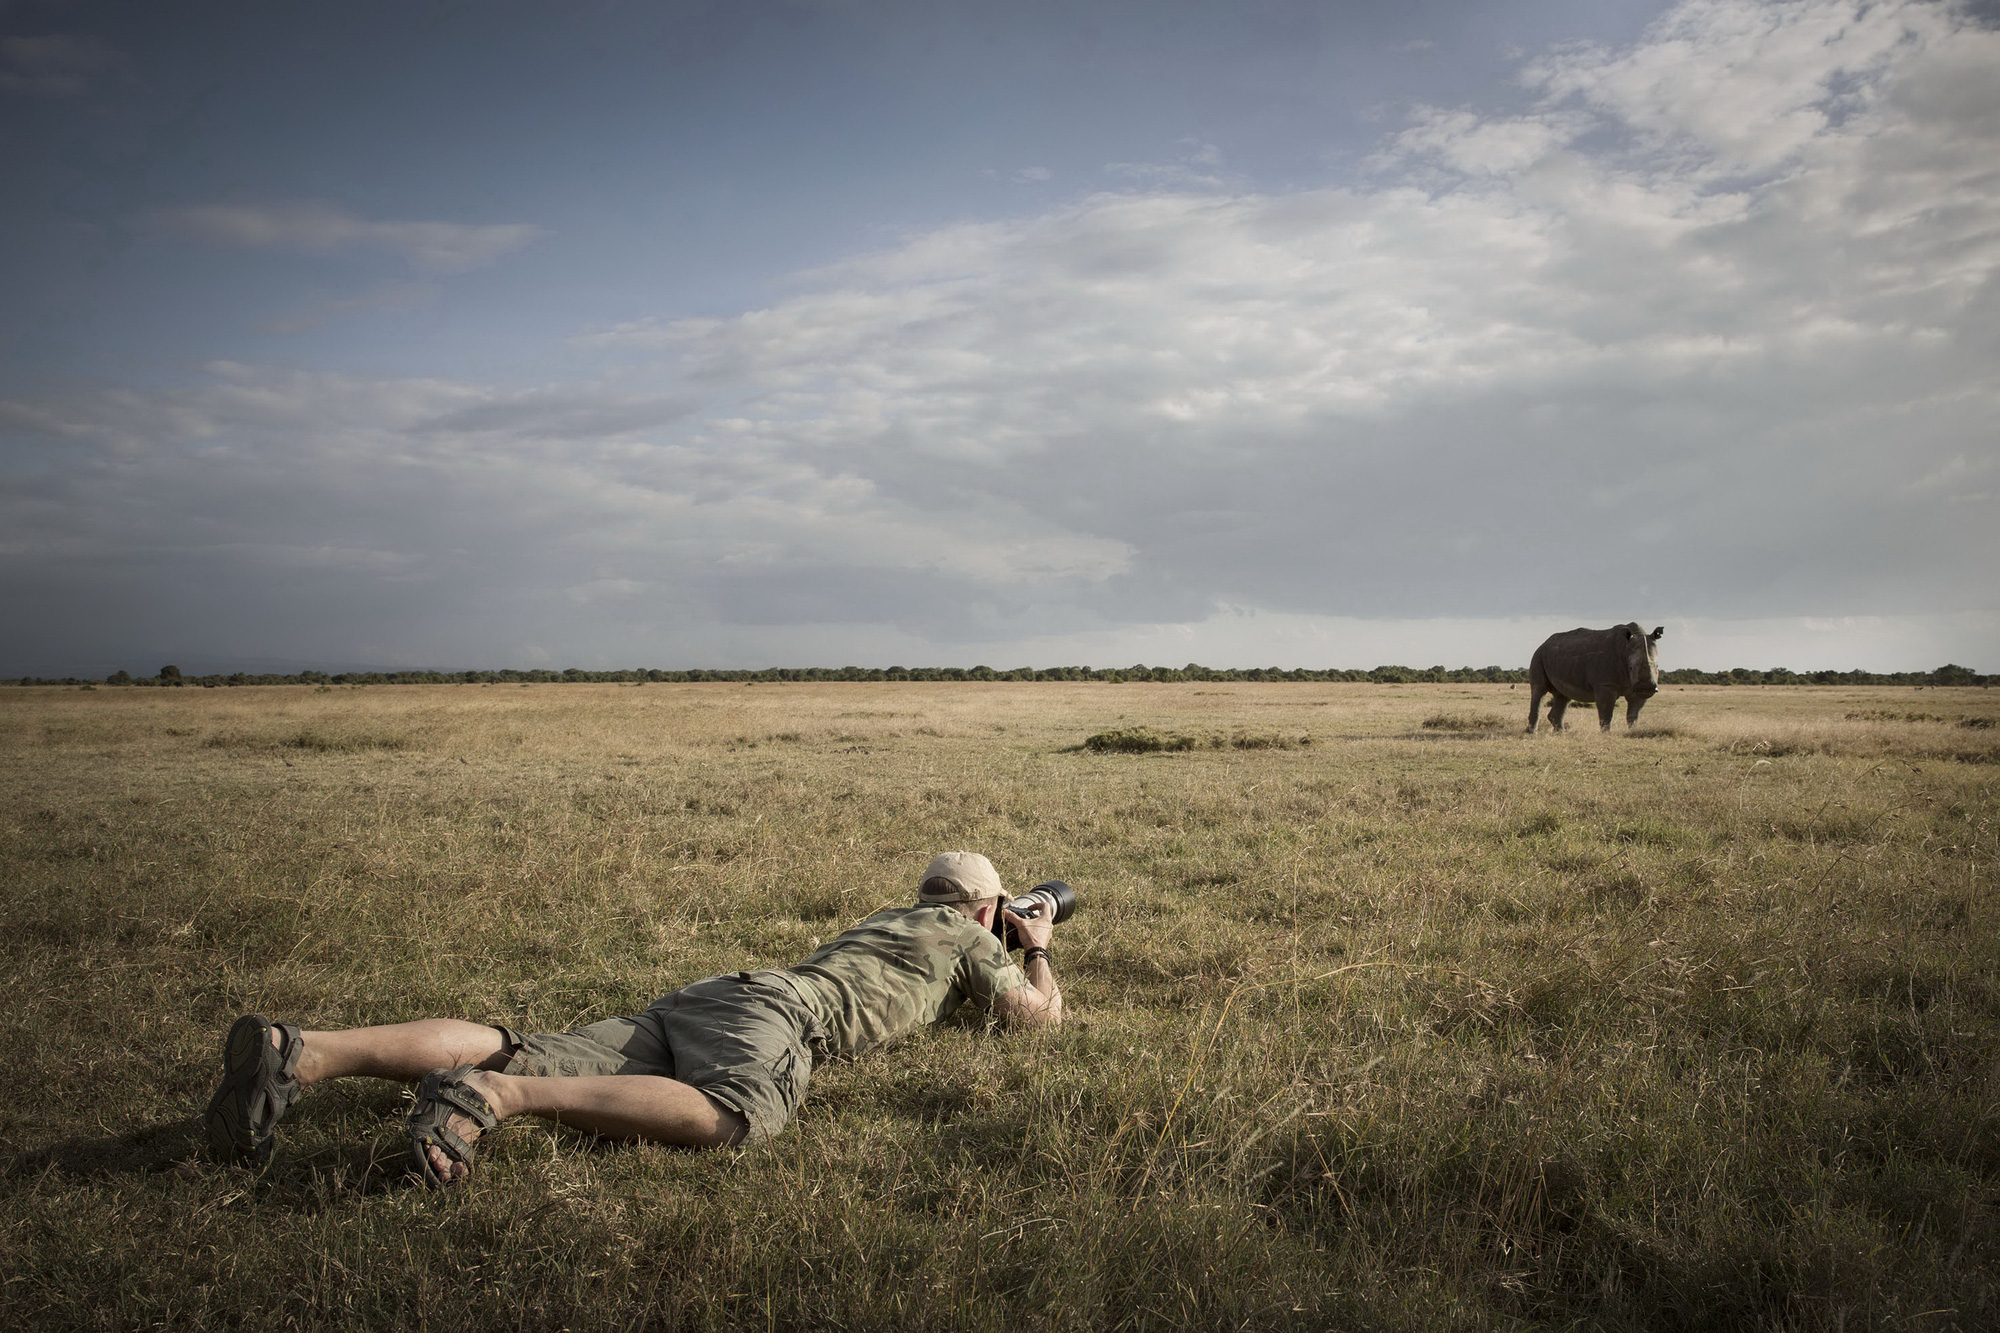 Spread love, not fear: Swedish photographer on wildlife conservation